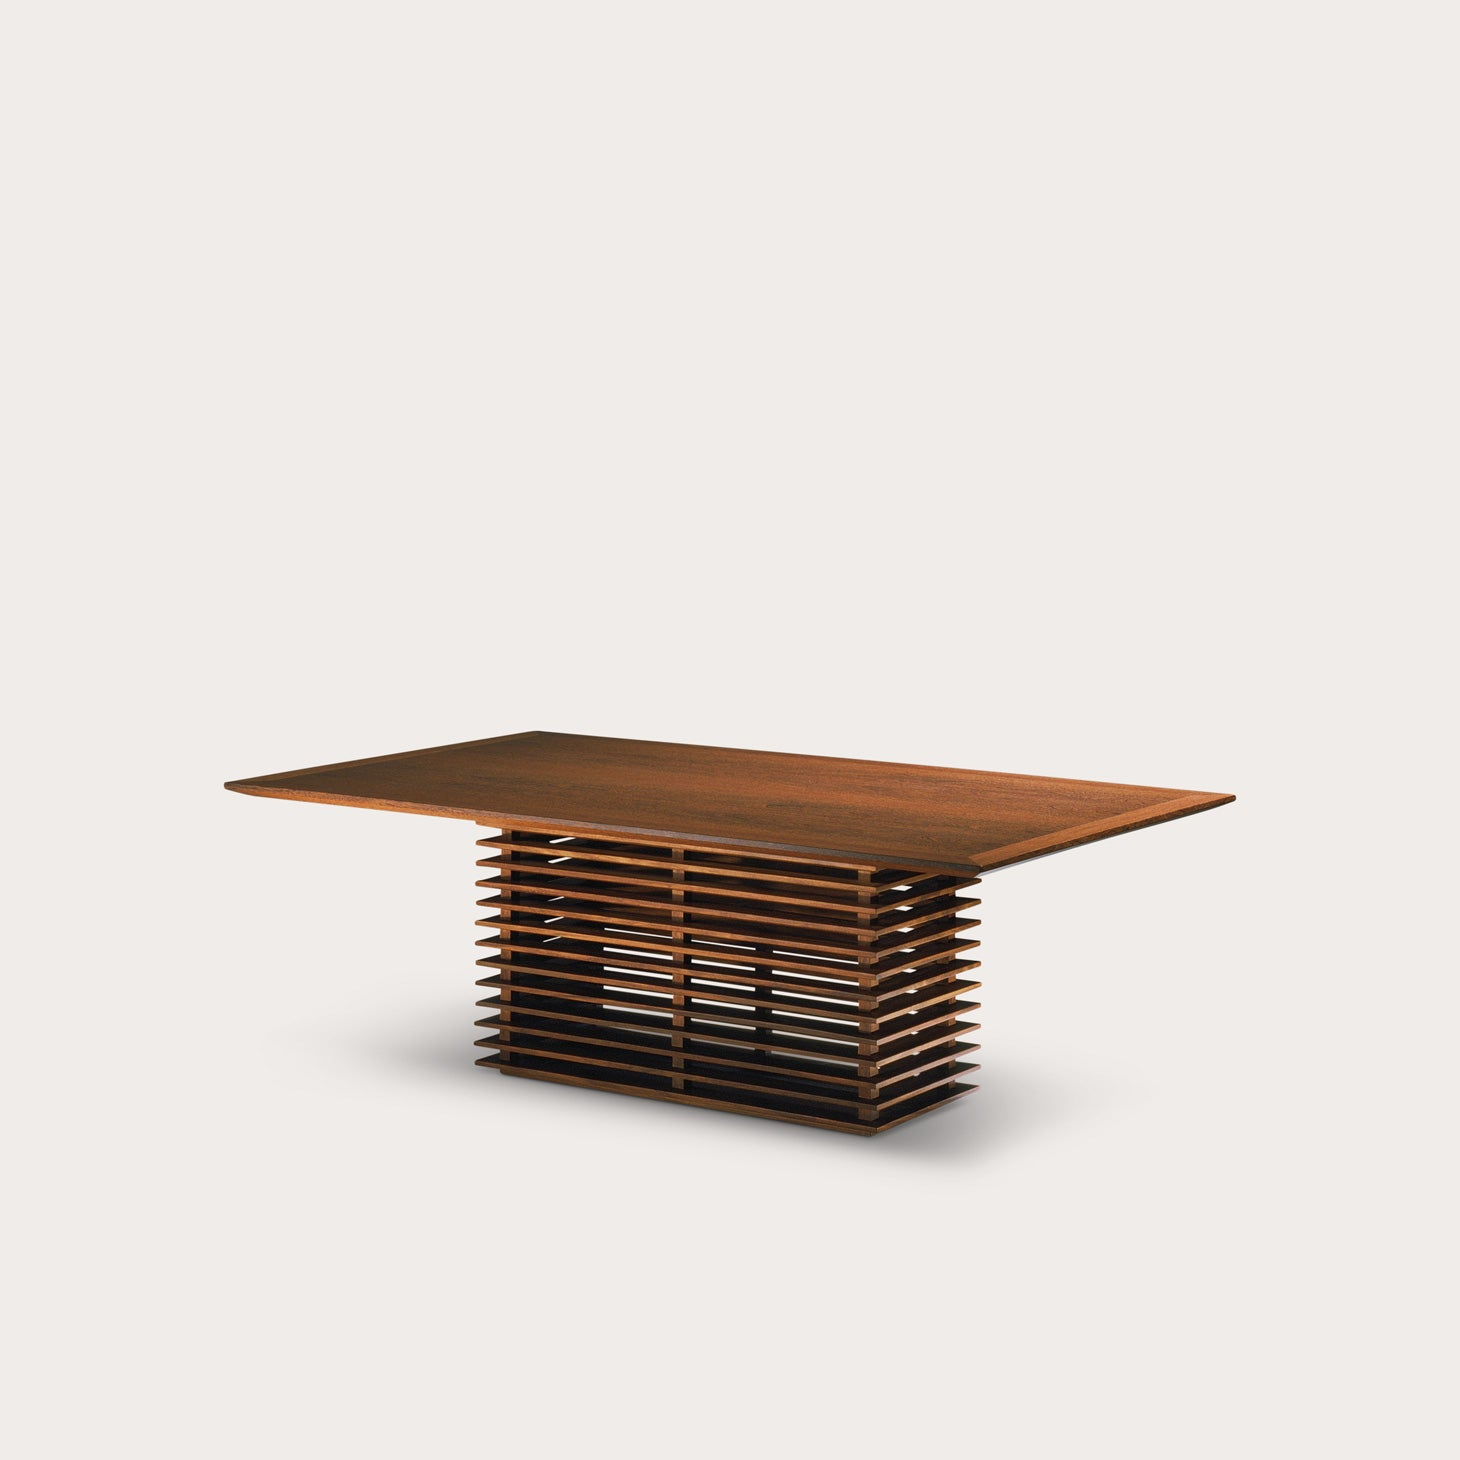 Fresta Dining Table Tables Claudia Moreira Salles Designer Furniture Sku: 003-230-10153